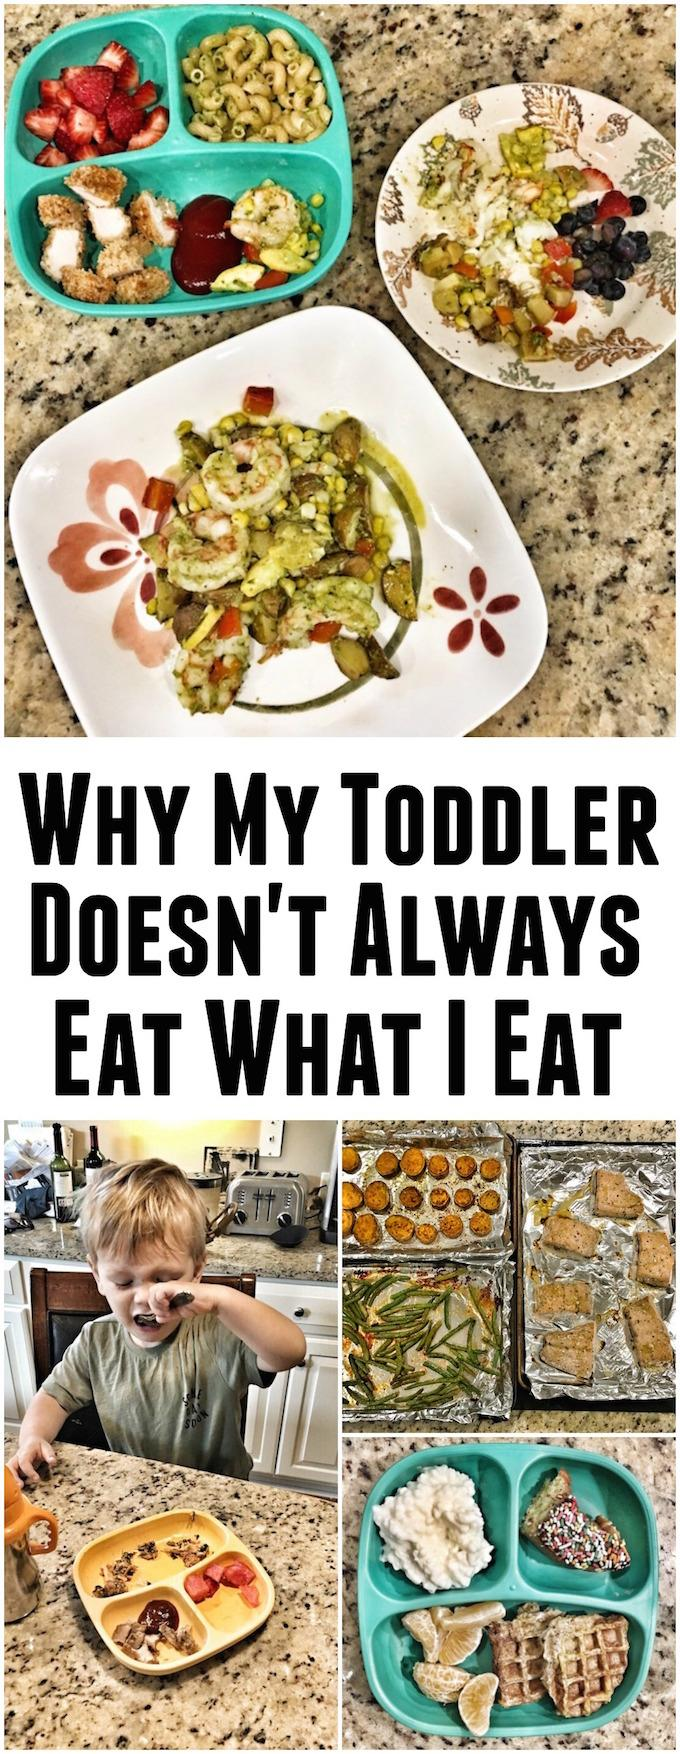 If you're looking for tips for feeding toddlers, here's my approach as a Registered Dietitian. Spoiler alert- sometimes I serve two different meals!